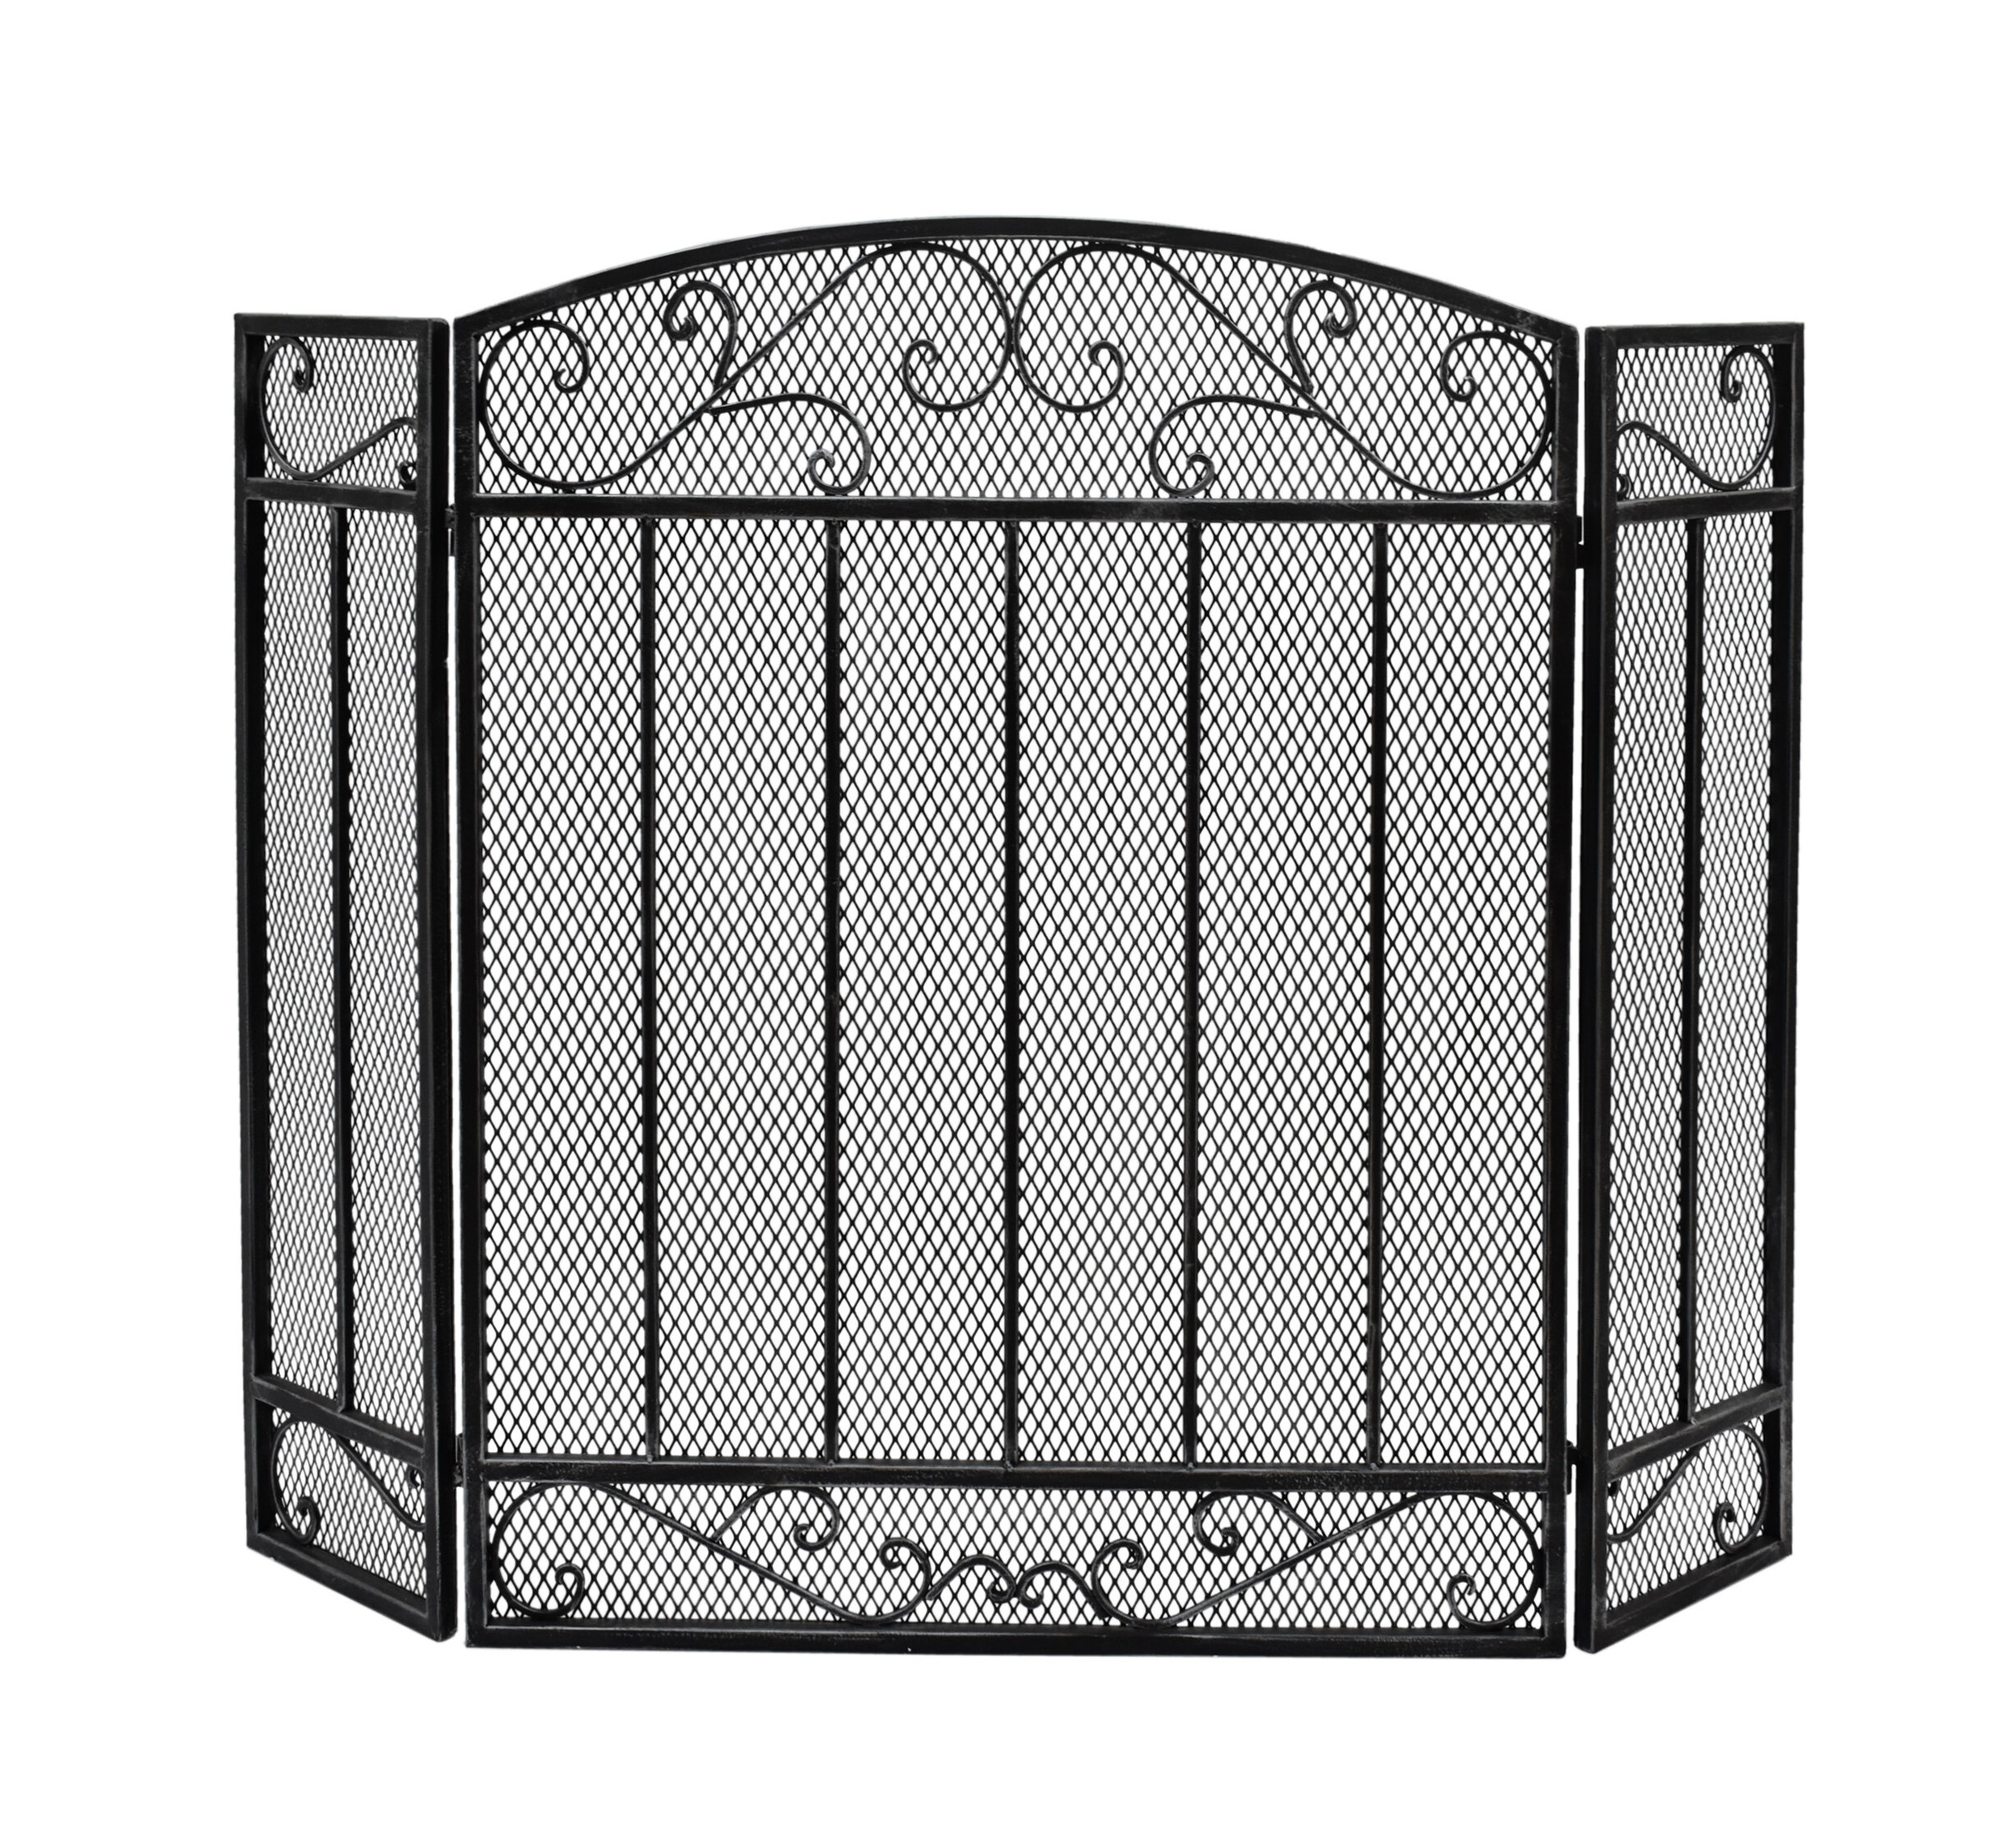 Ornate Black 3 Folding Panel Fire Guard Spark Protection Safety Screen